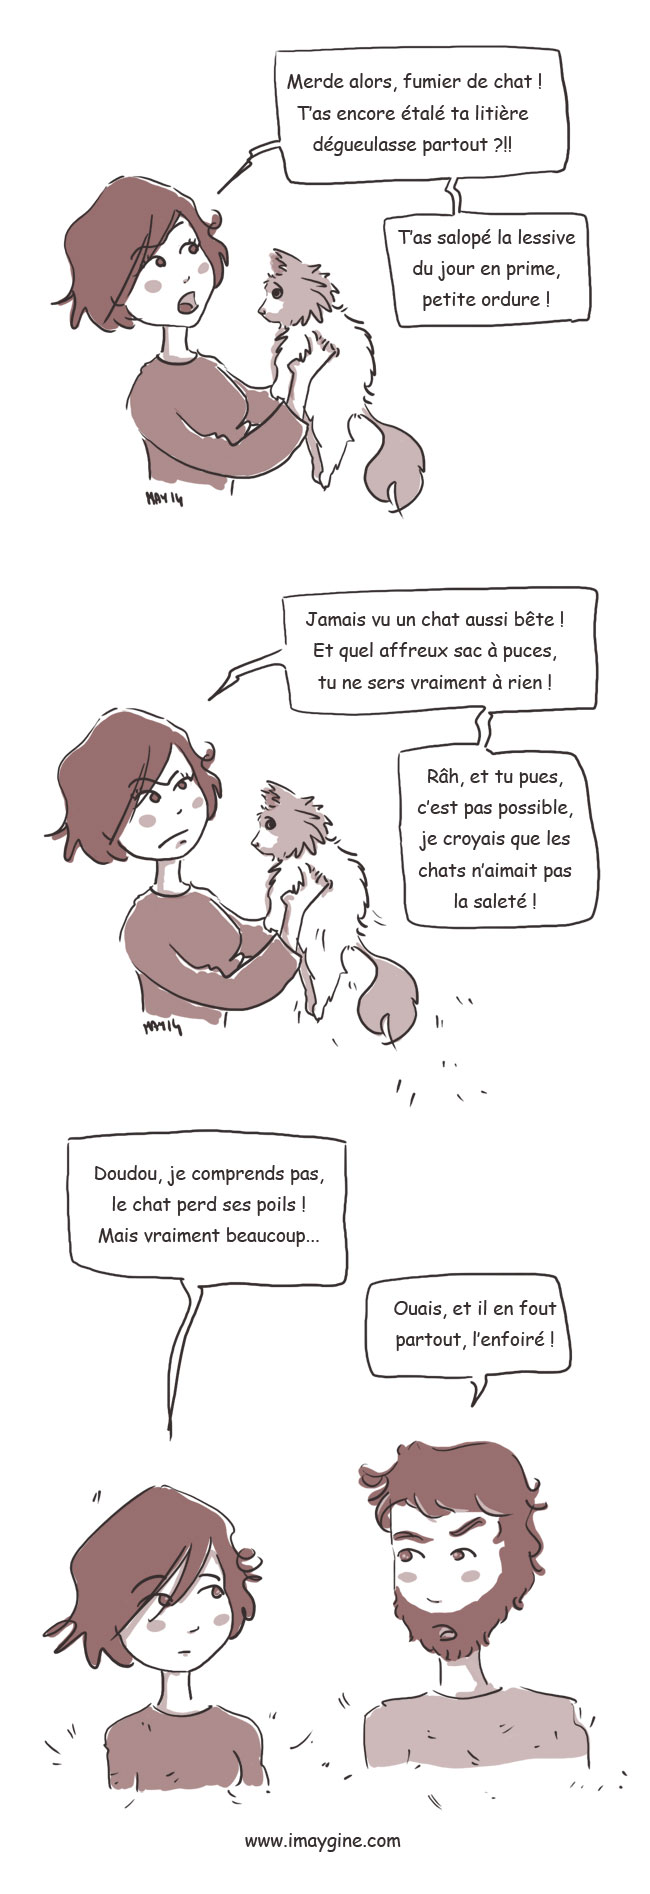 maltraitance animaux chat